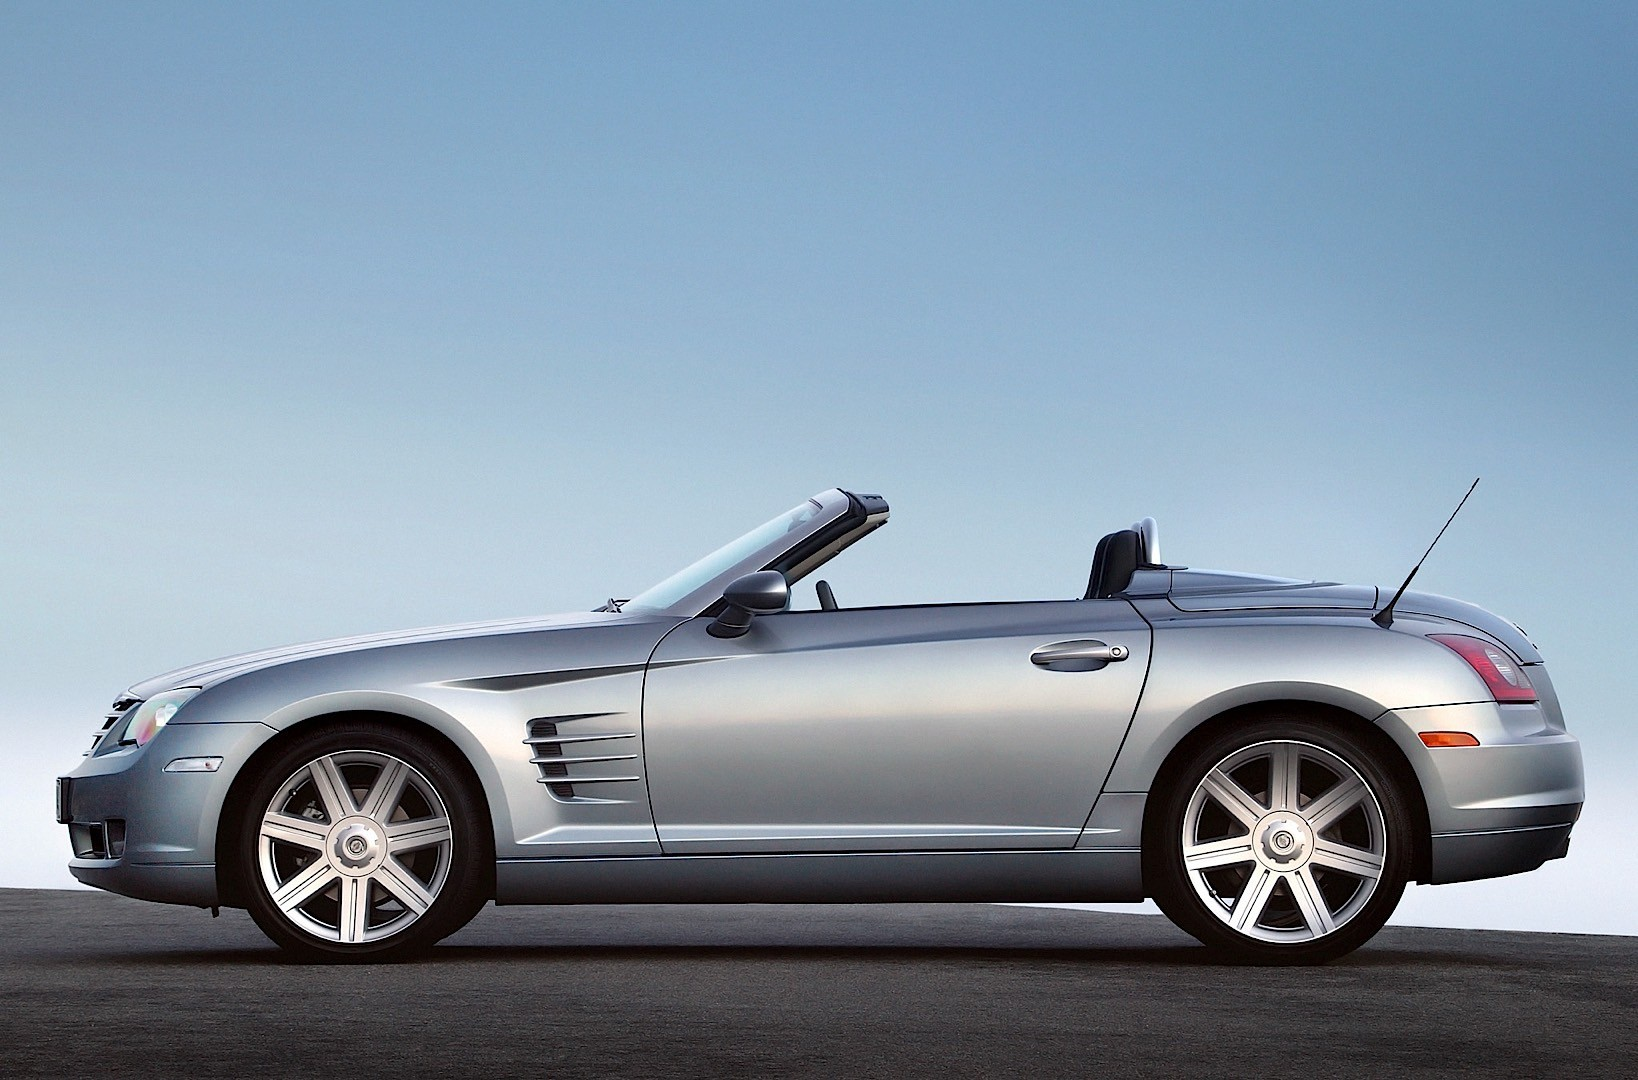 Chrysler Crossfire Roadster 2007 on gmc v6 engine